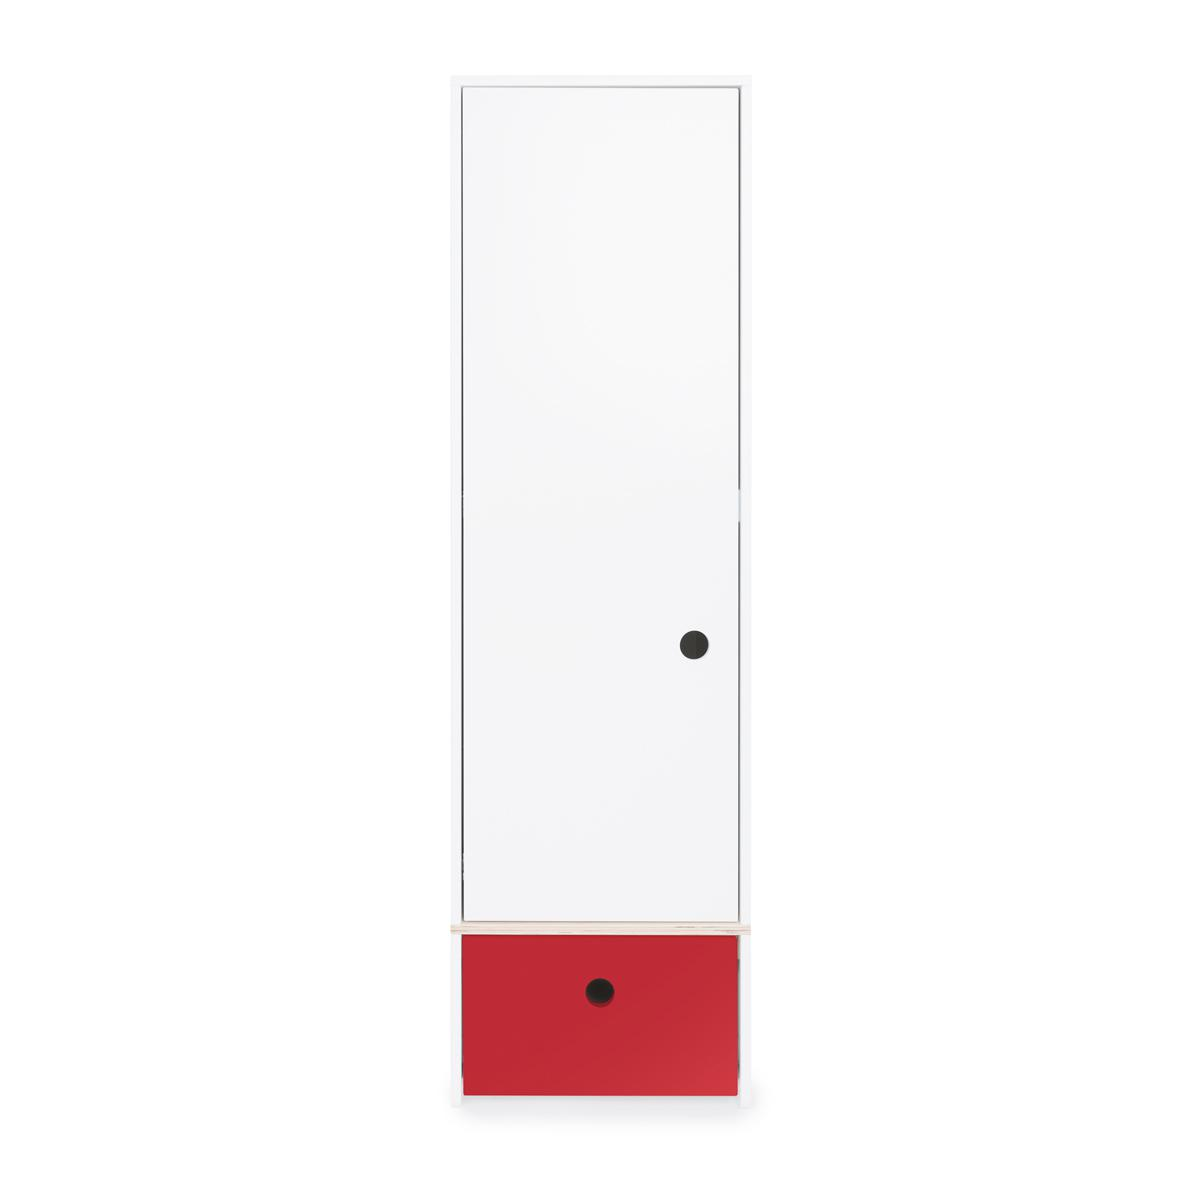 Wookids - Armoire 1 p COLORFLEX t red